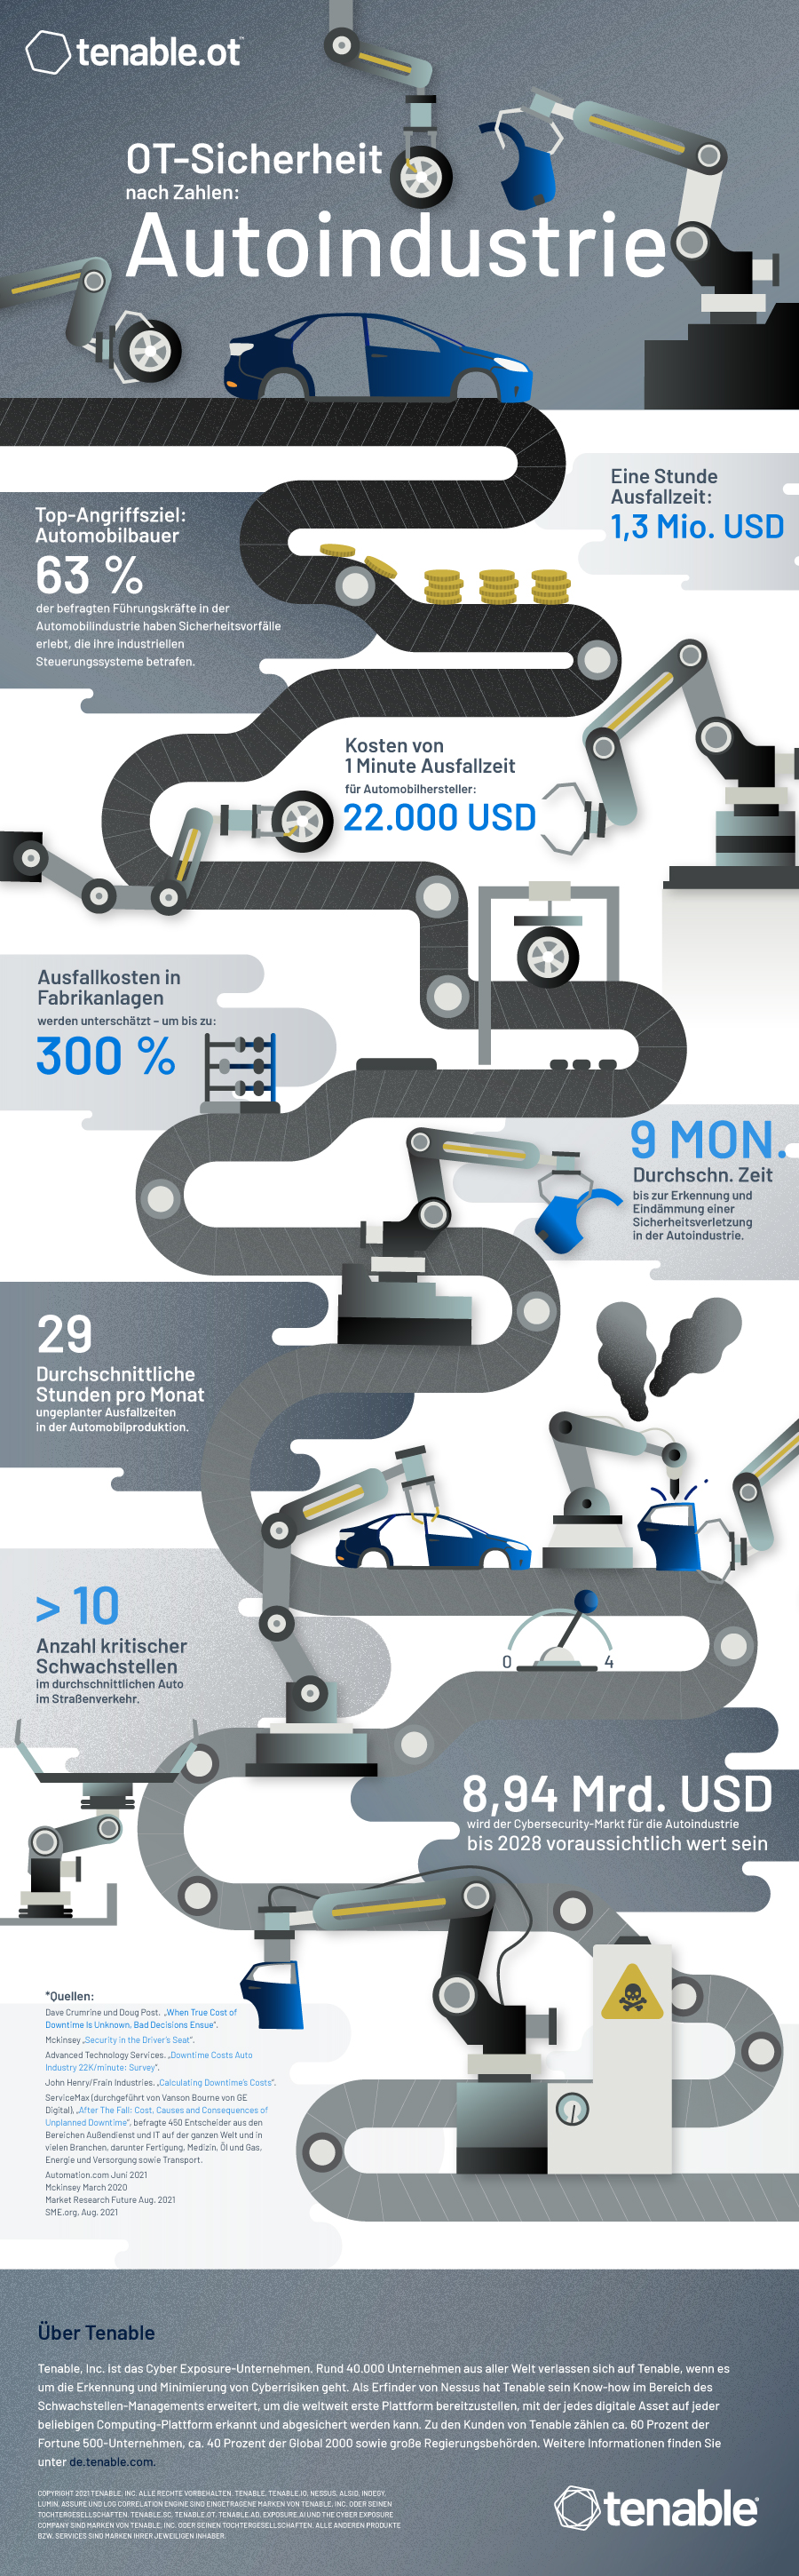 OT Security By The Numbers - Automotive